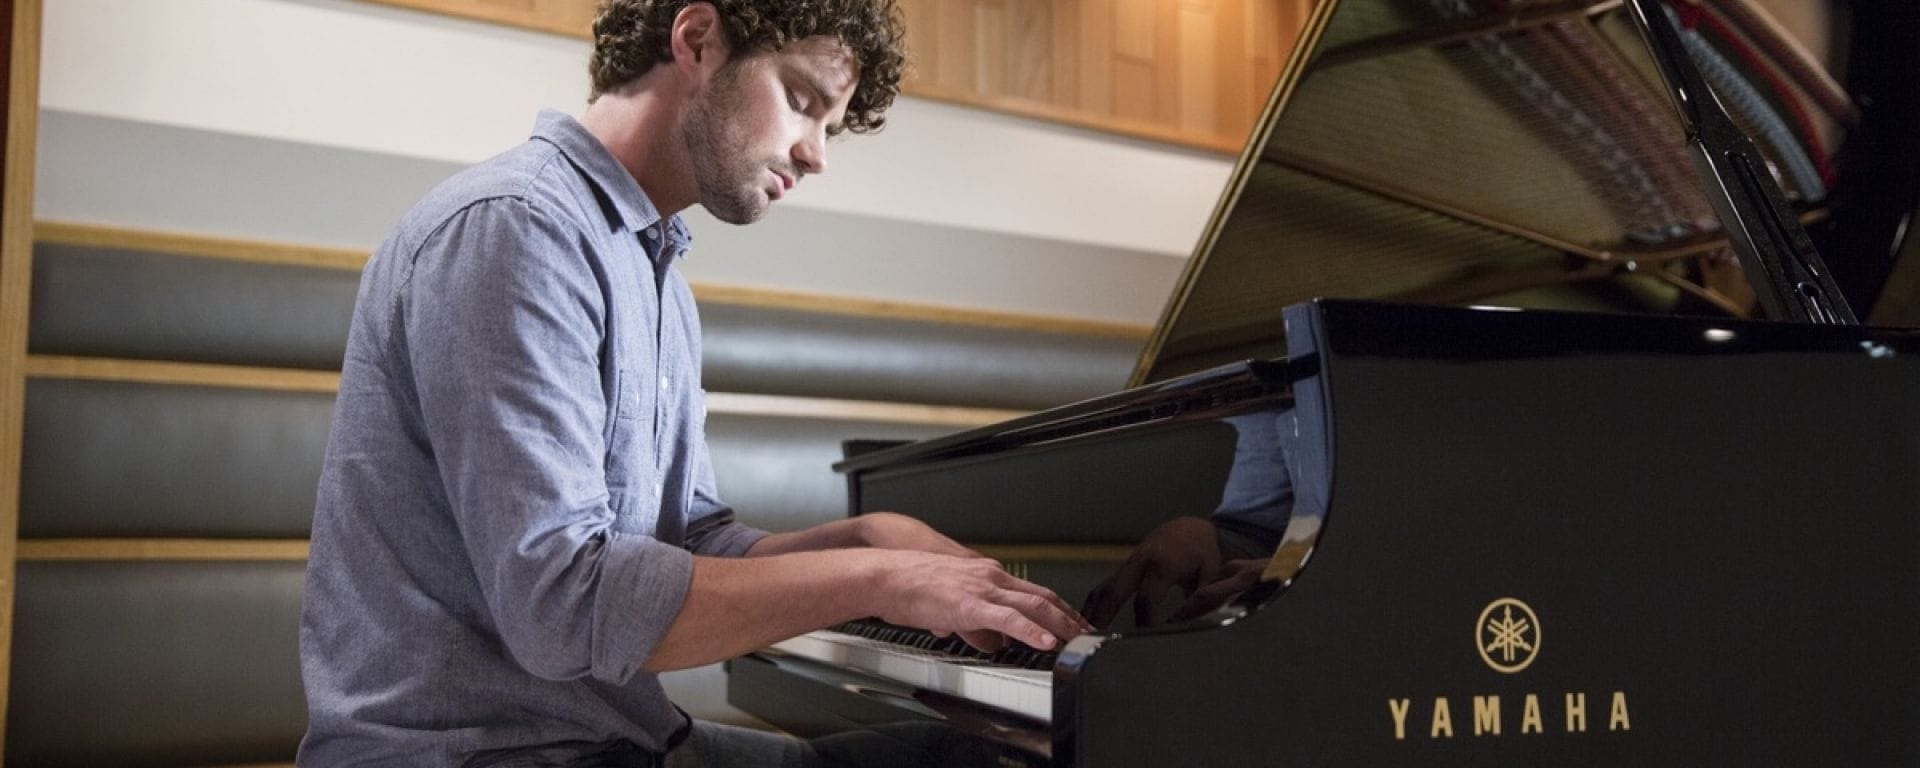 Man in his 20's dressed casually with curly hair and some facial hair playing a Yamaha piano.